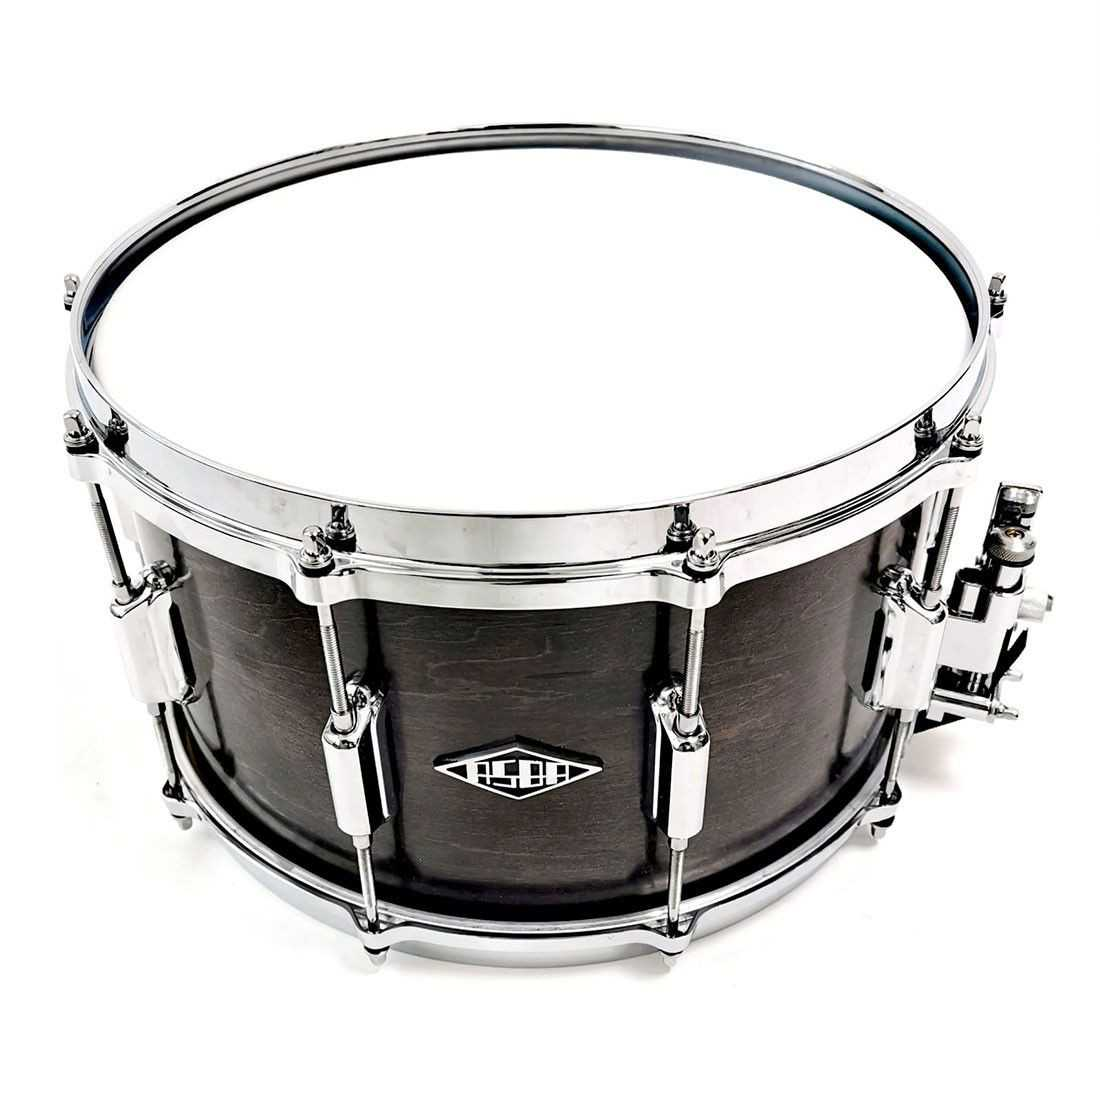 Snare rive gauche finish dark brown front view + strainer